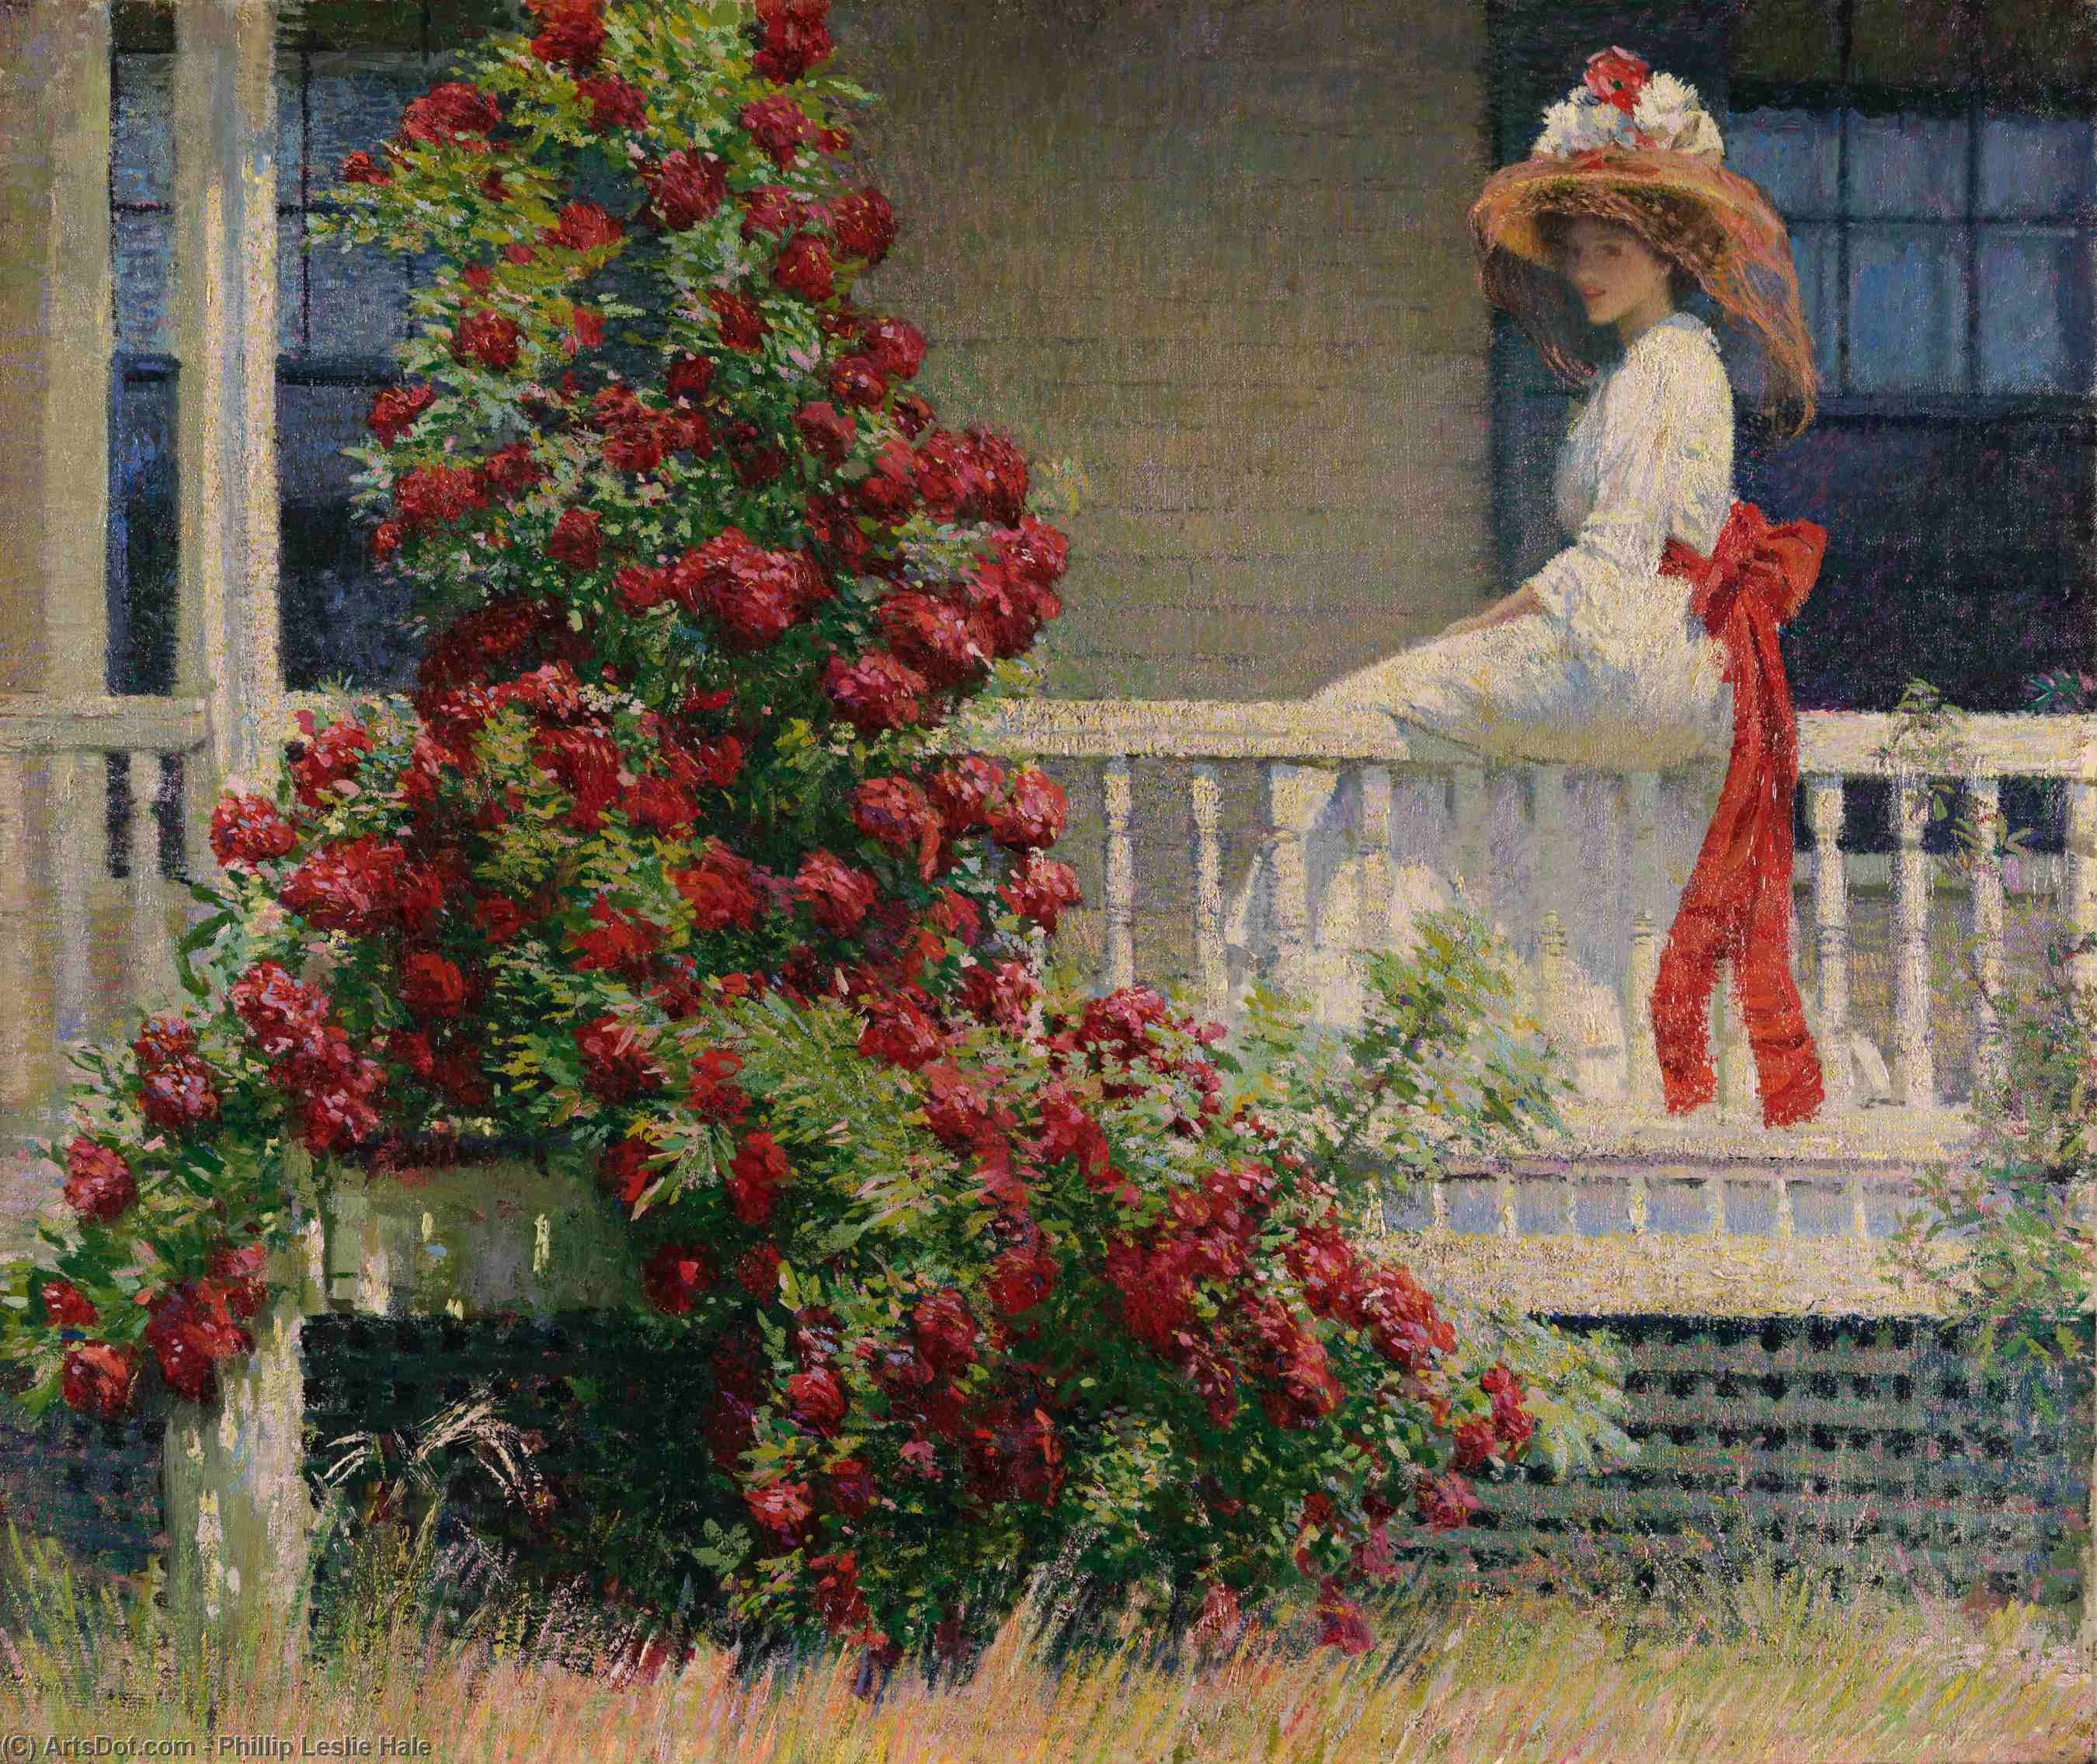 Wikioo.org - The Encyclopedia of Fine Arts - Painting, Artwork by Philip Leslie Hale - The Crimson Rambler